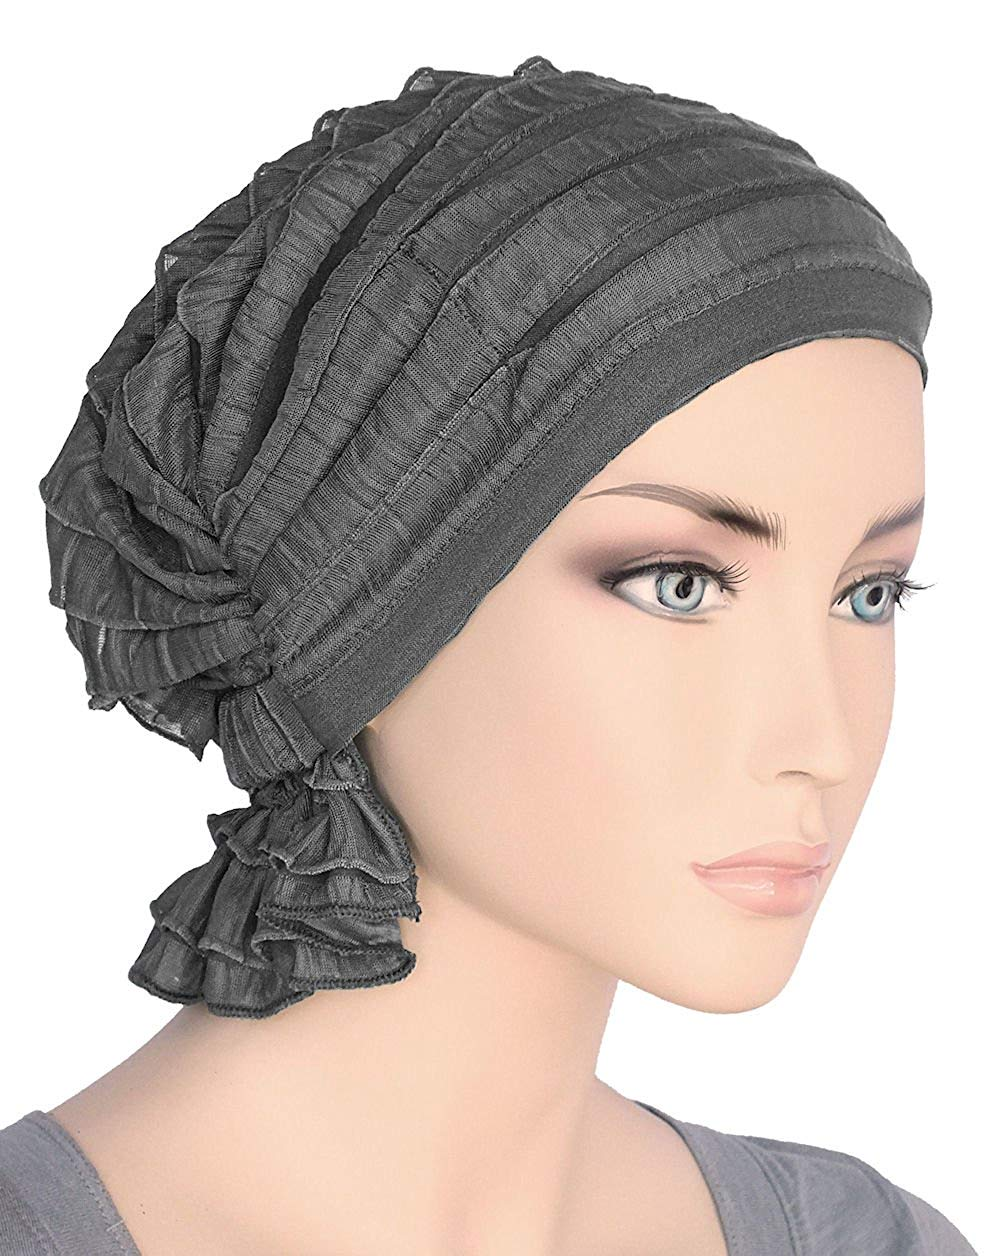 908f15cb6c5 Get Quotations · Turban Plus The Abbey Cap in Ruffle Fabric Chemo Caps  Cancer Hats for Women